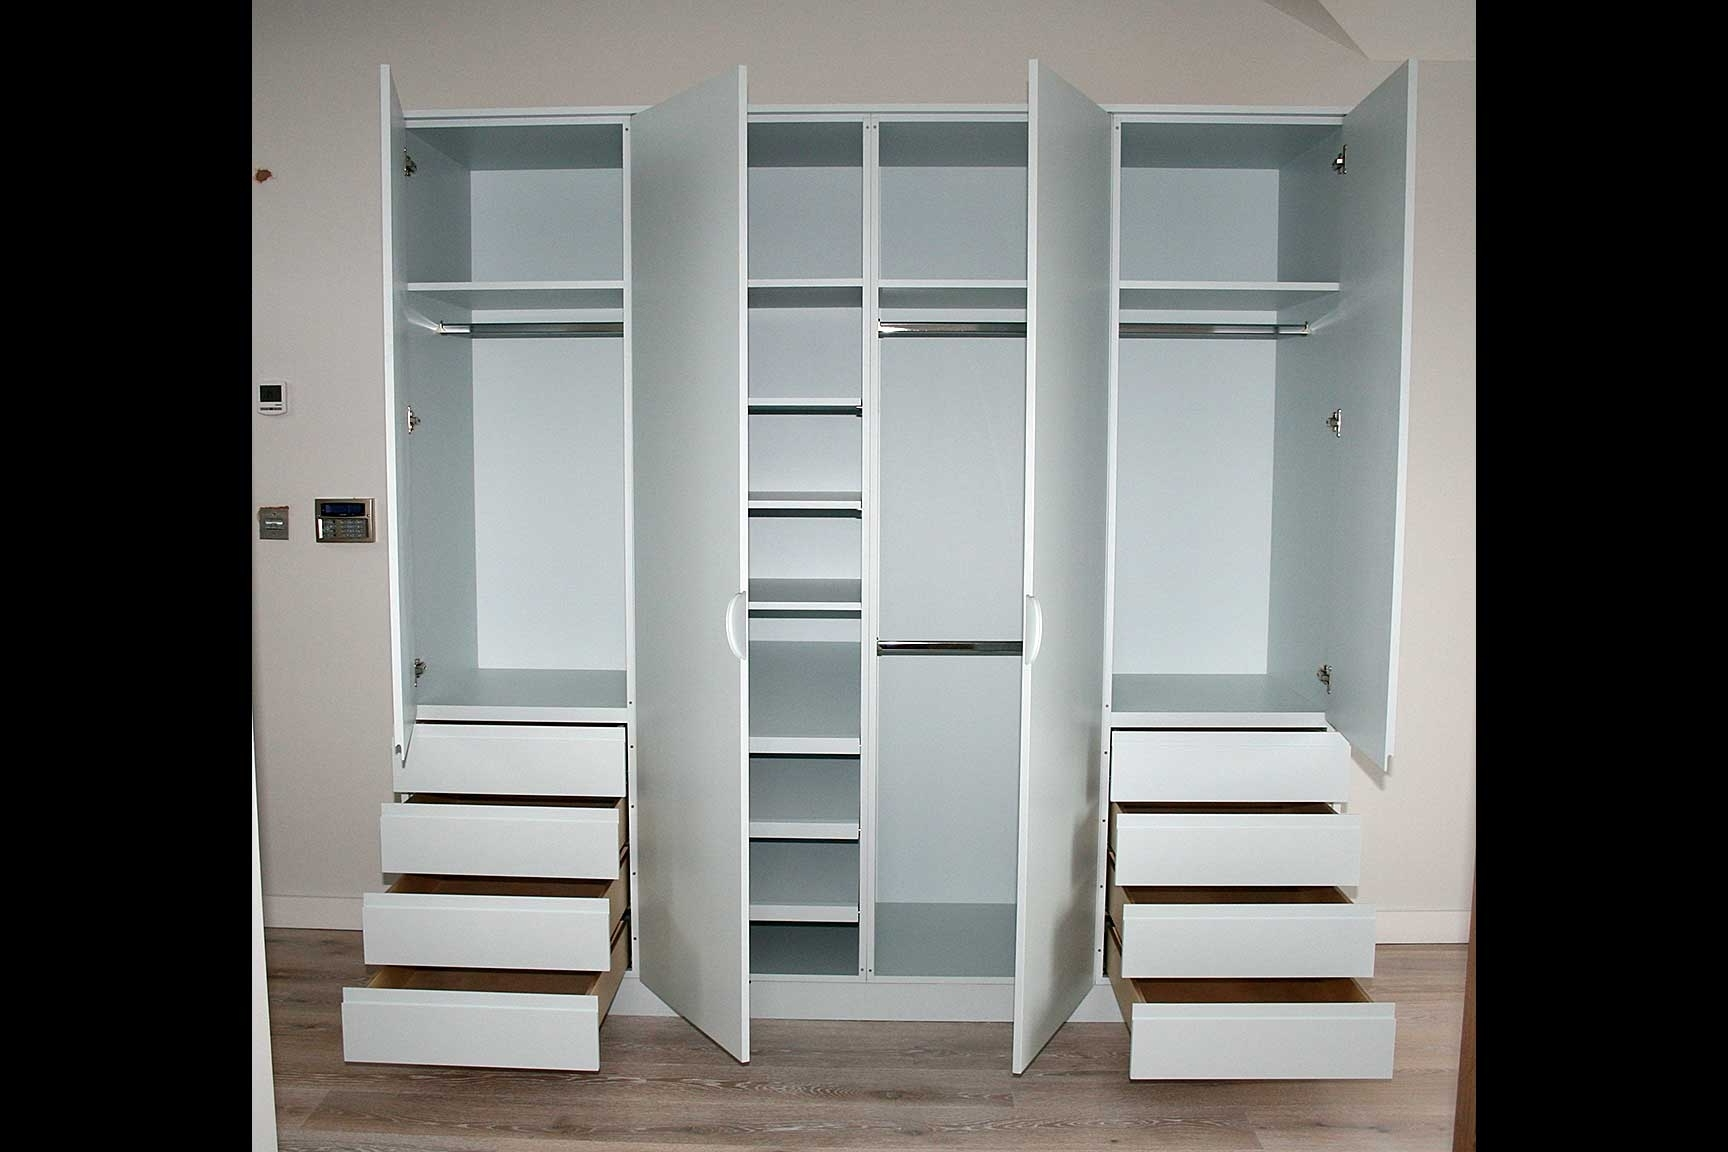 Preferred Sensational Inspiration Ideas Wardrobe With Drawers And Shelves Pertaining To Wardrobes With Drawers And Shelves (View 9 of 15)